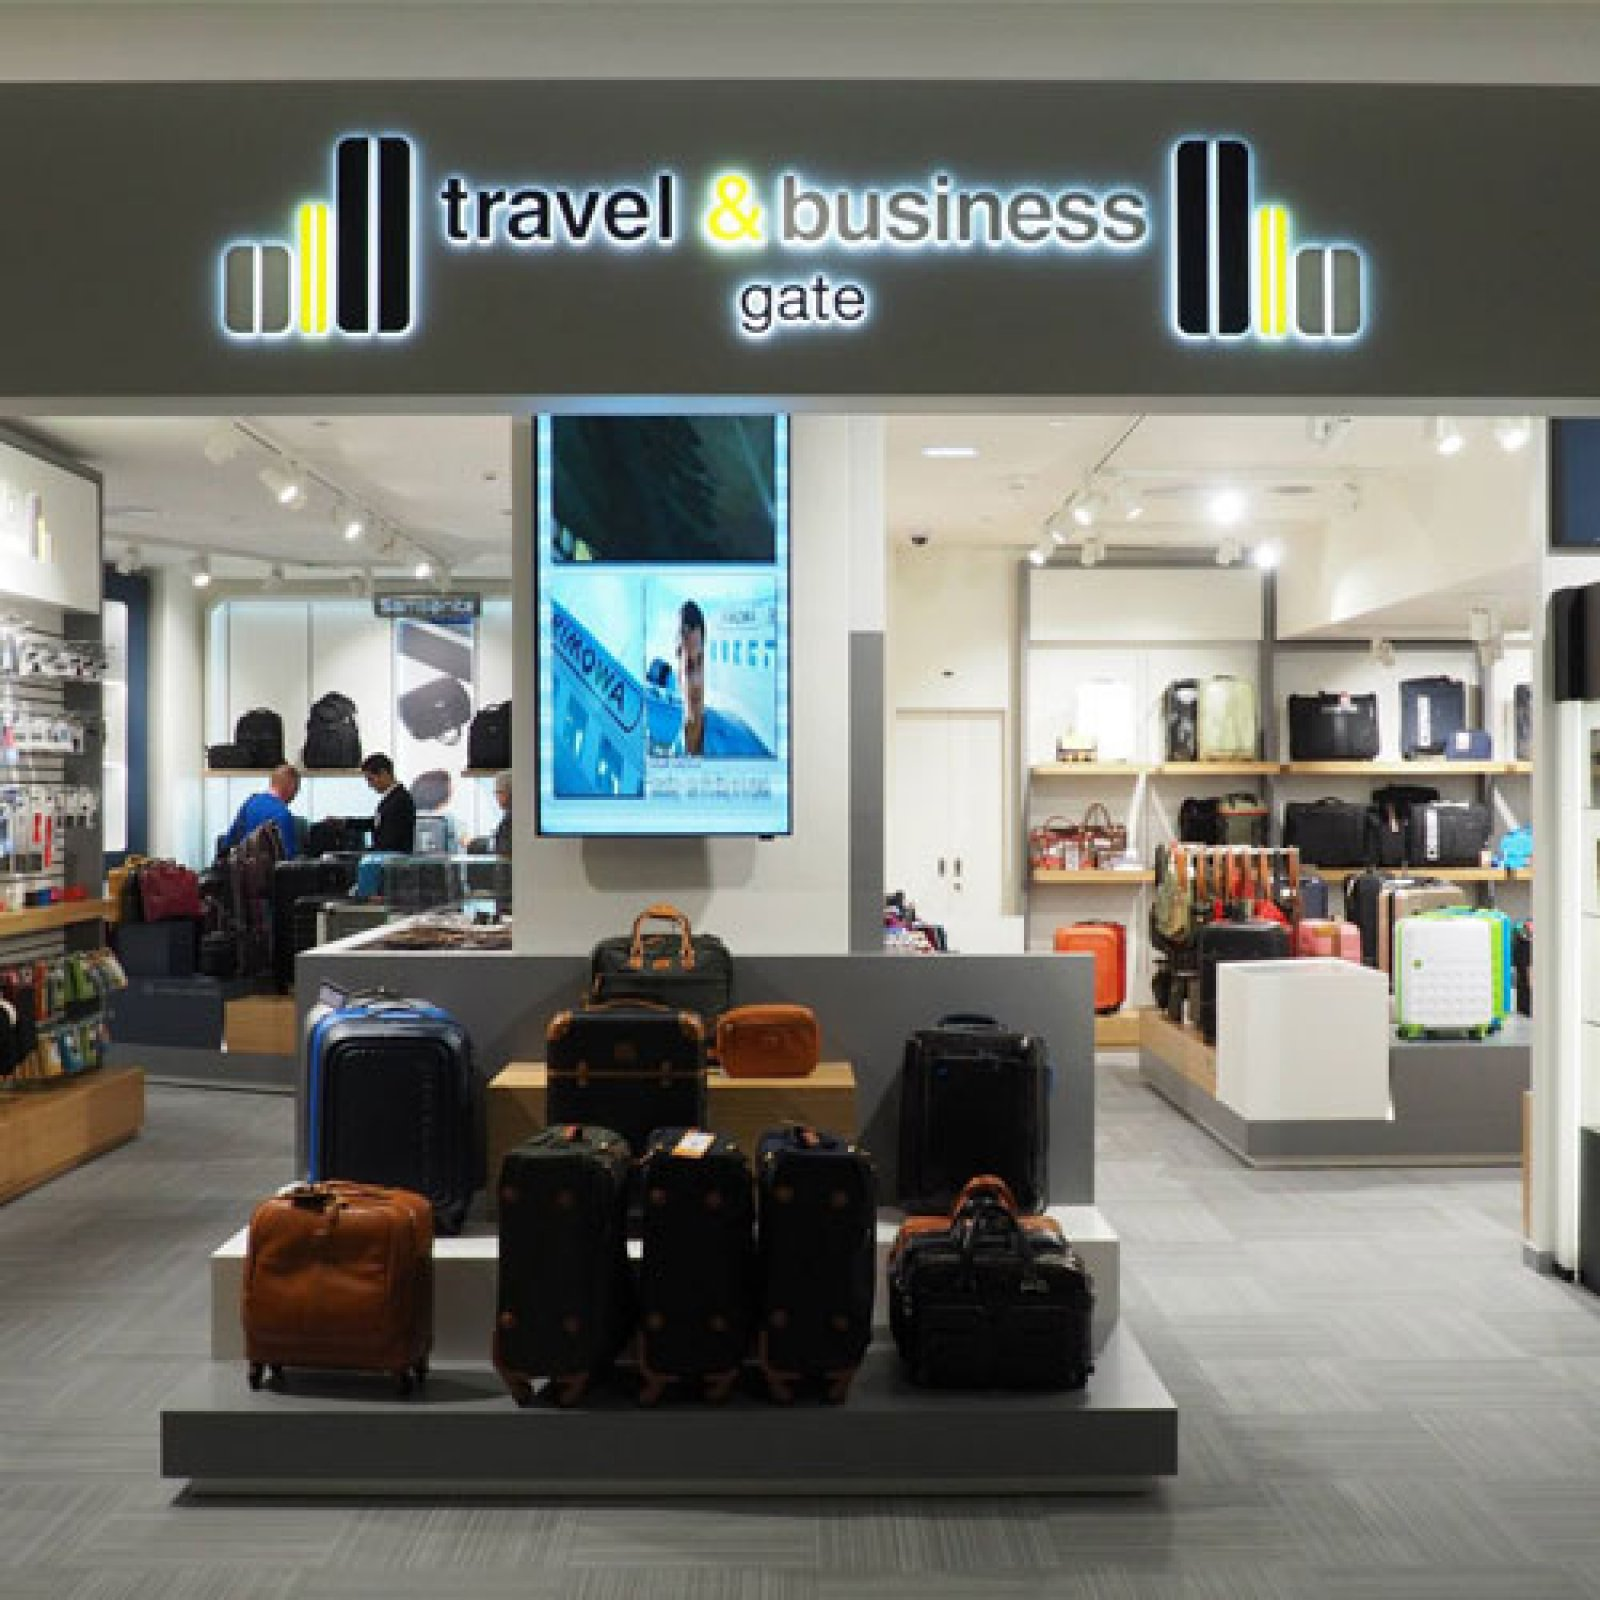 TRAVEL & BUSINESS GATE